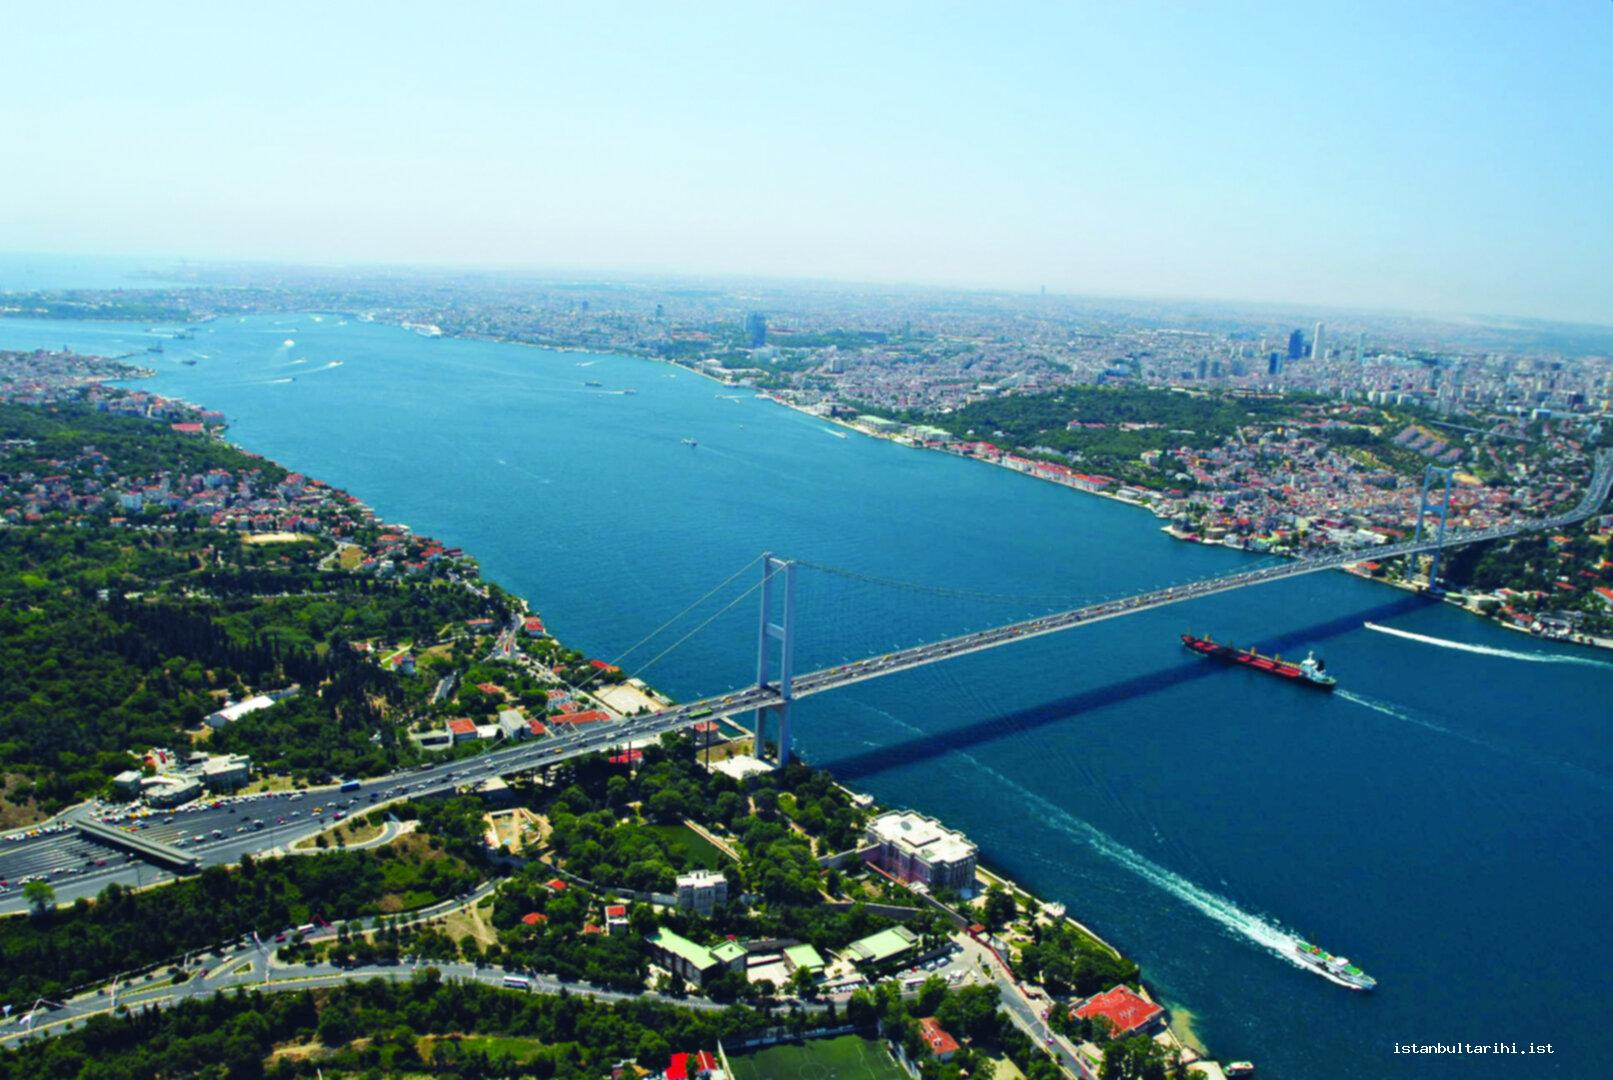 28- From the Bridge of 15 July Martyrs (Bosporus Bridge before July 2016) to Sarayburnu: Two sides of the bridge